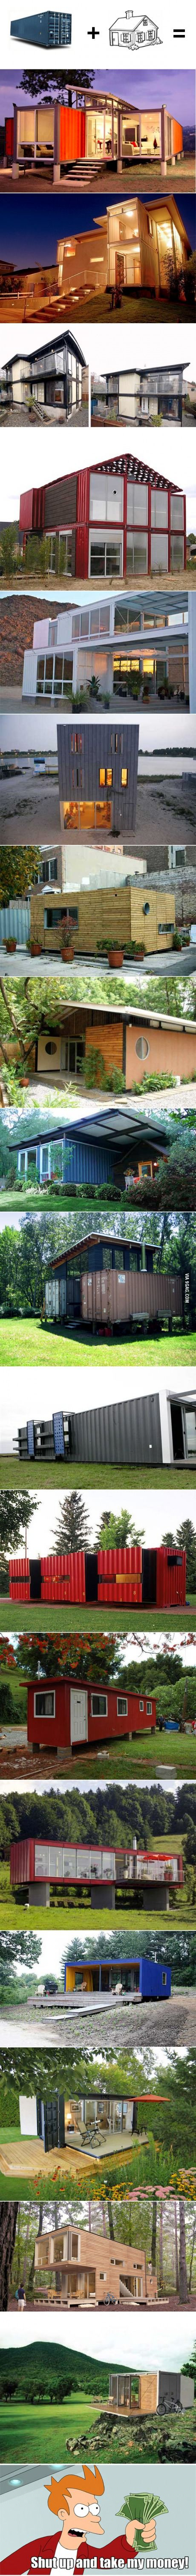 Find out how to make cargo container homes, download easy to follow blueprint to create your own DIY shipping container home http://howtobuildashippingcontainerhome.blogspot.co.nz/